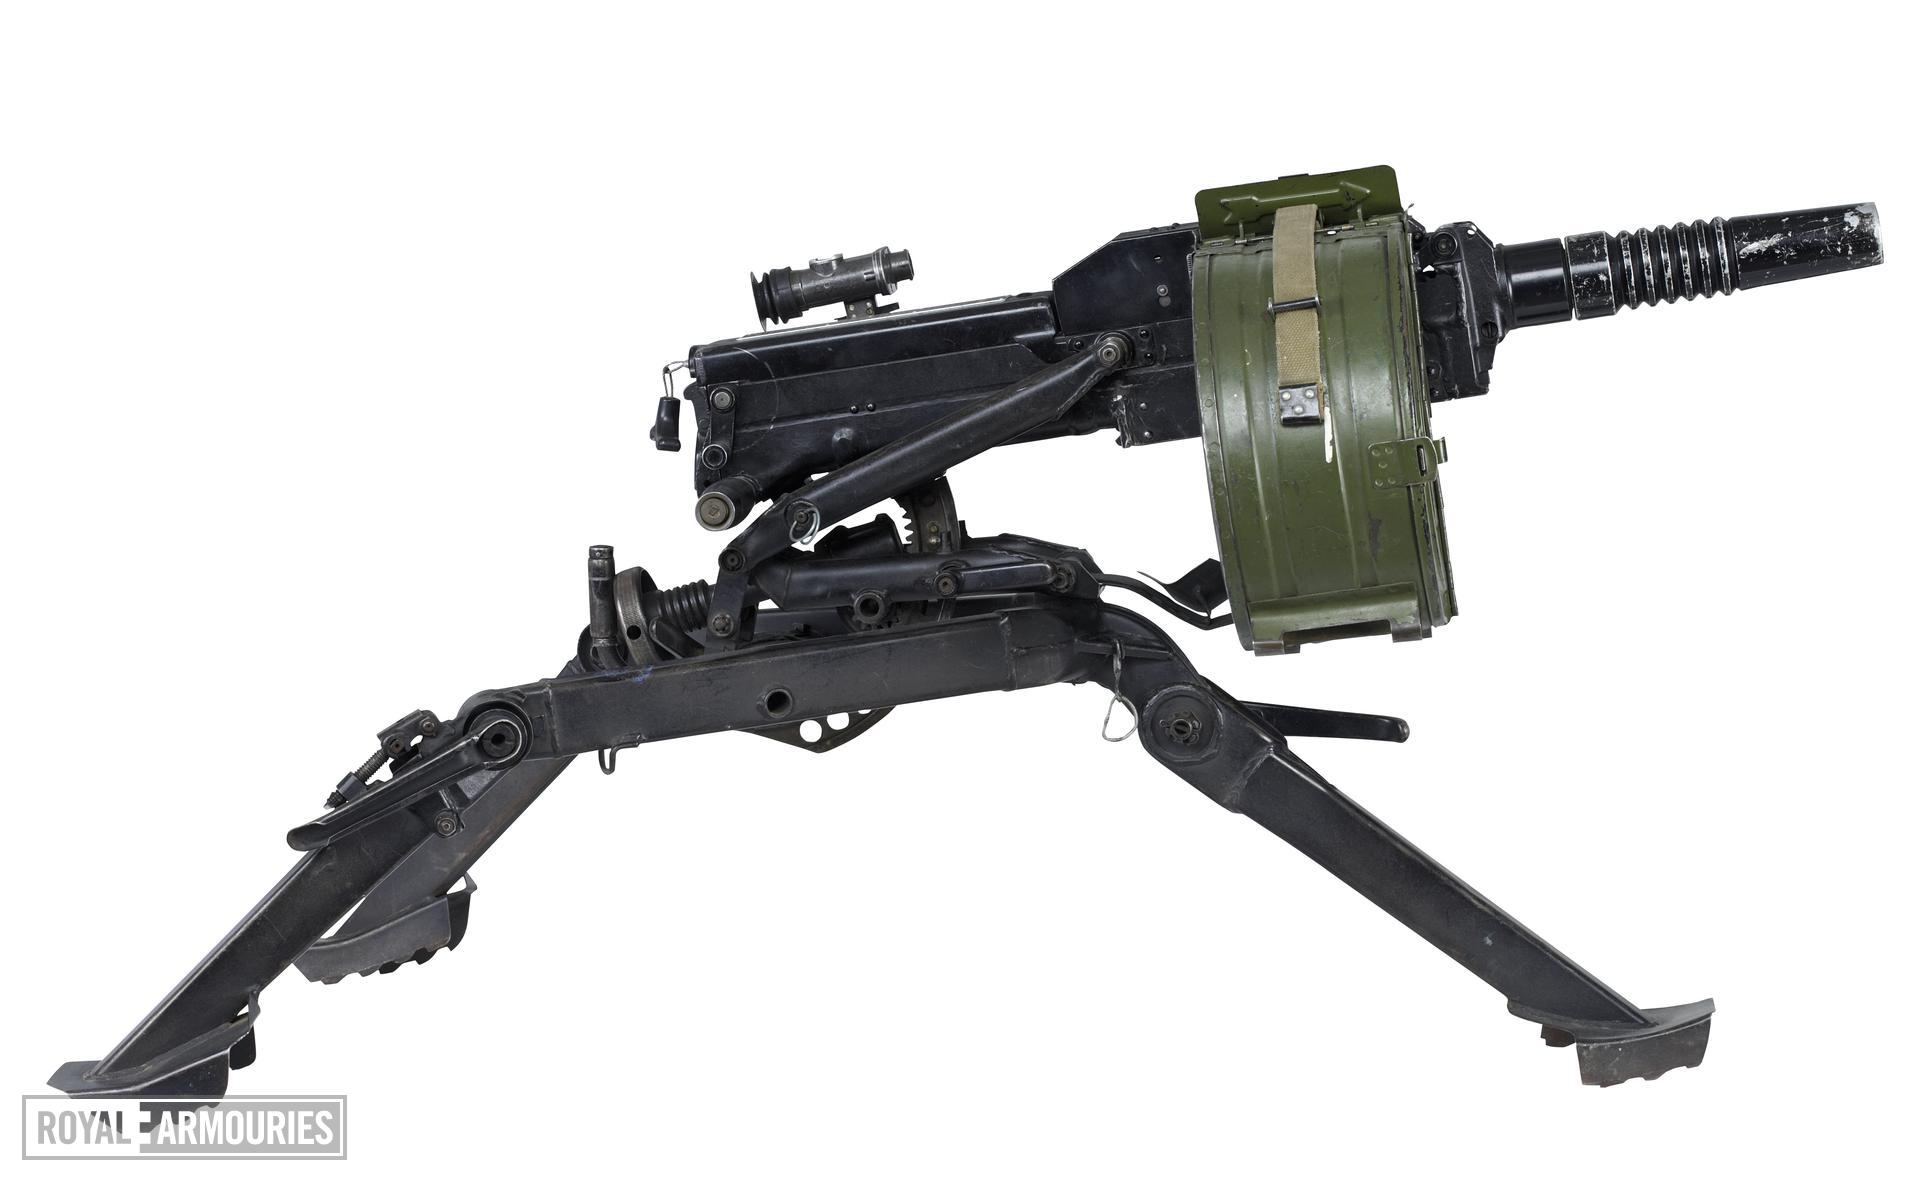 Centrefire automatic grenade launcher - AGS17